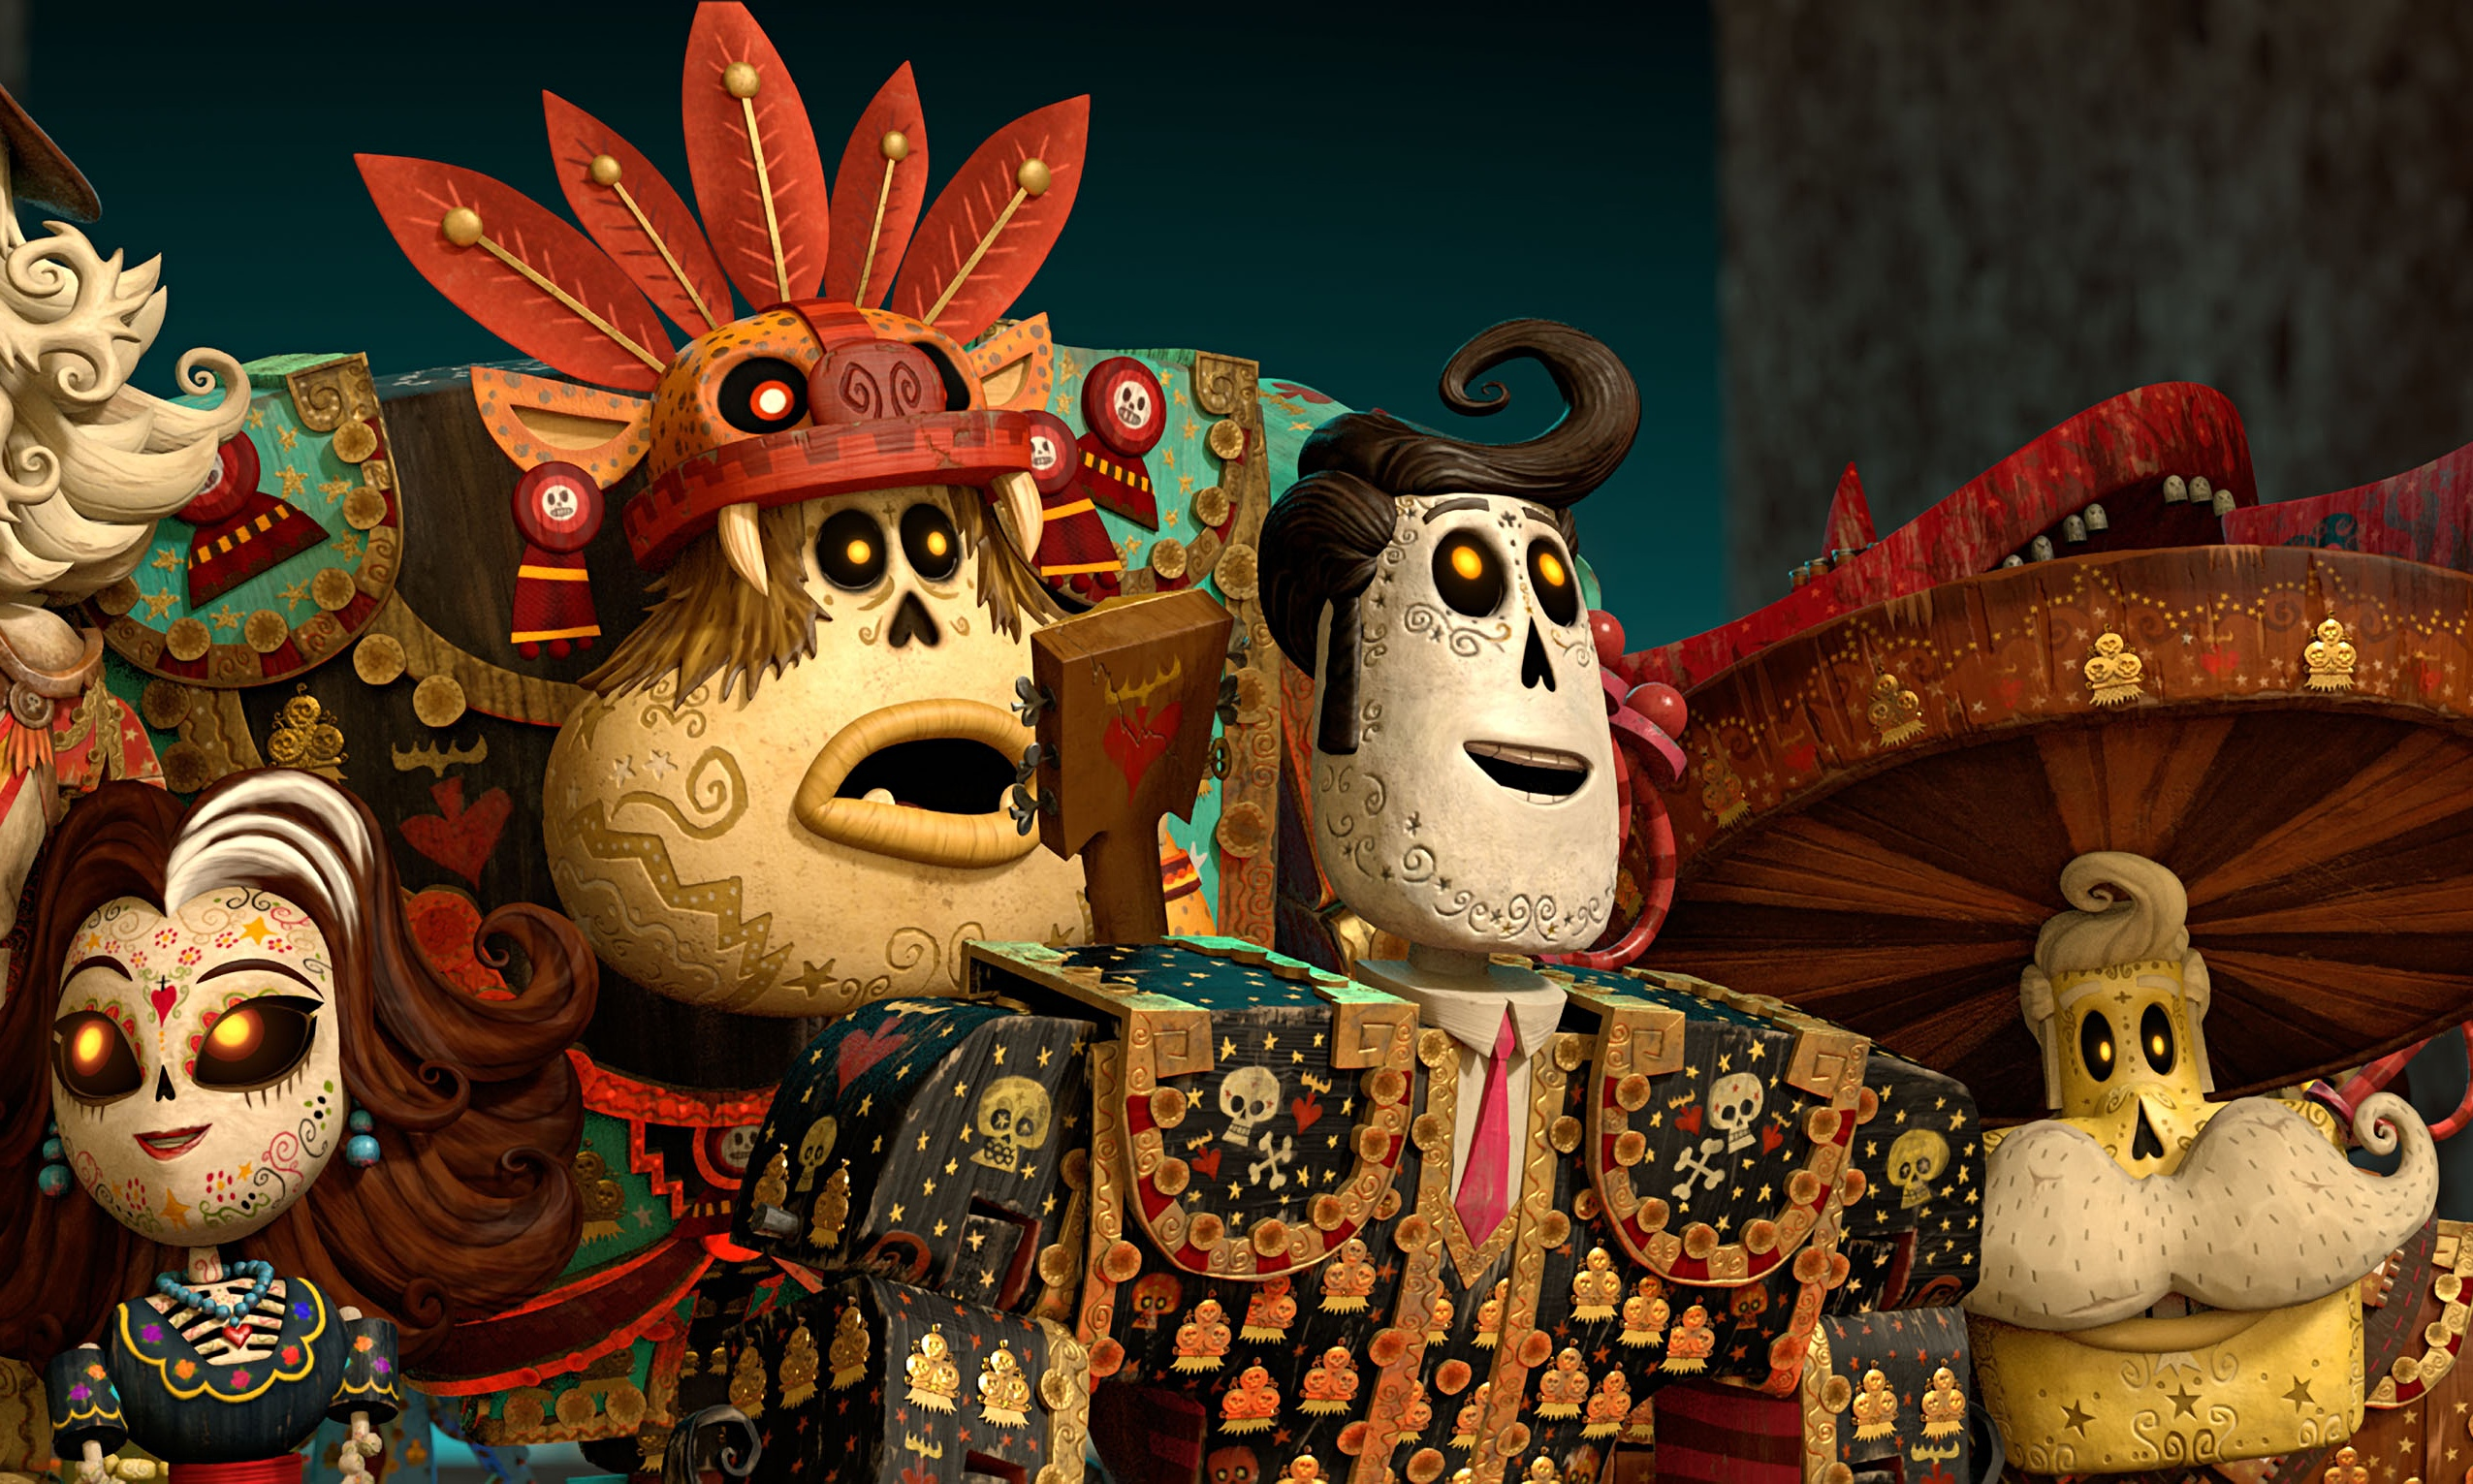 The book of life review vibrantly alternative animation for The book of life characters names